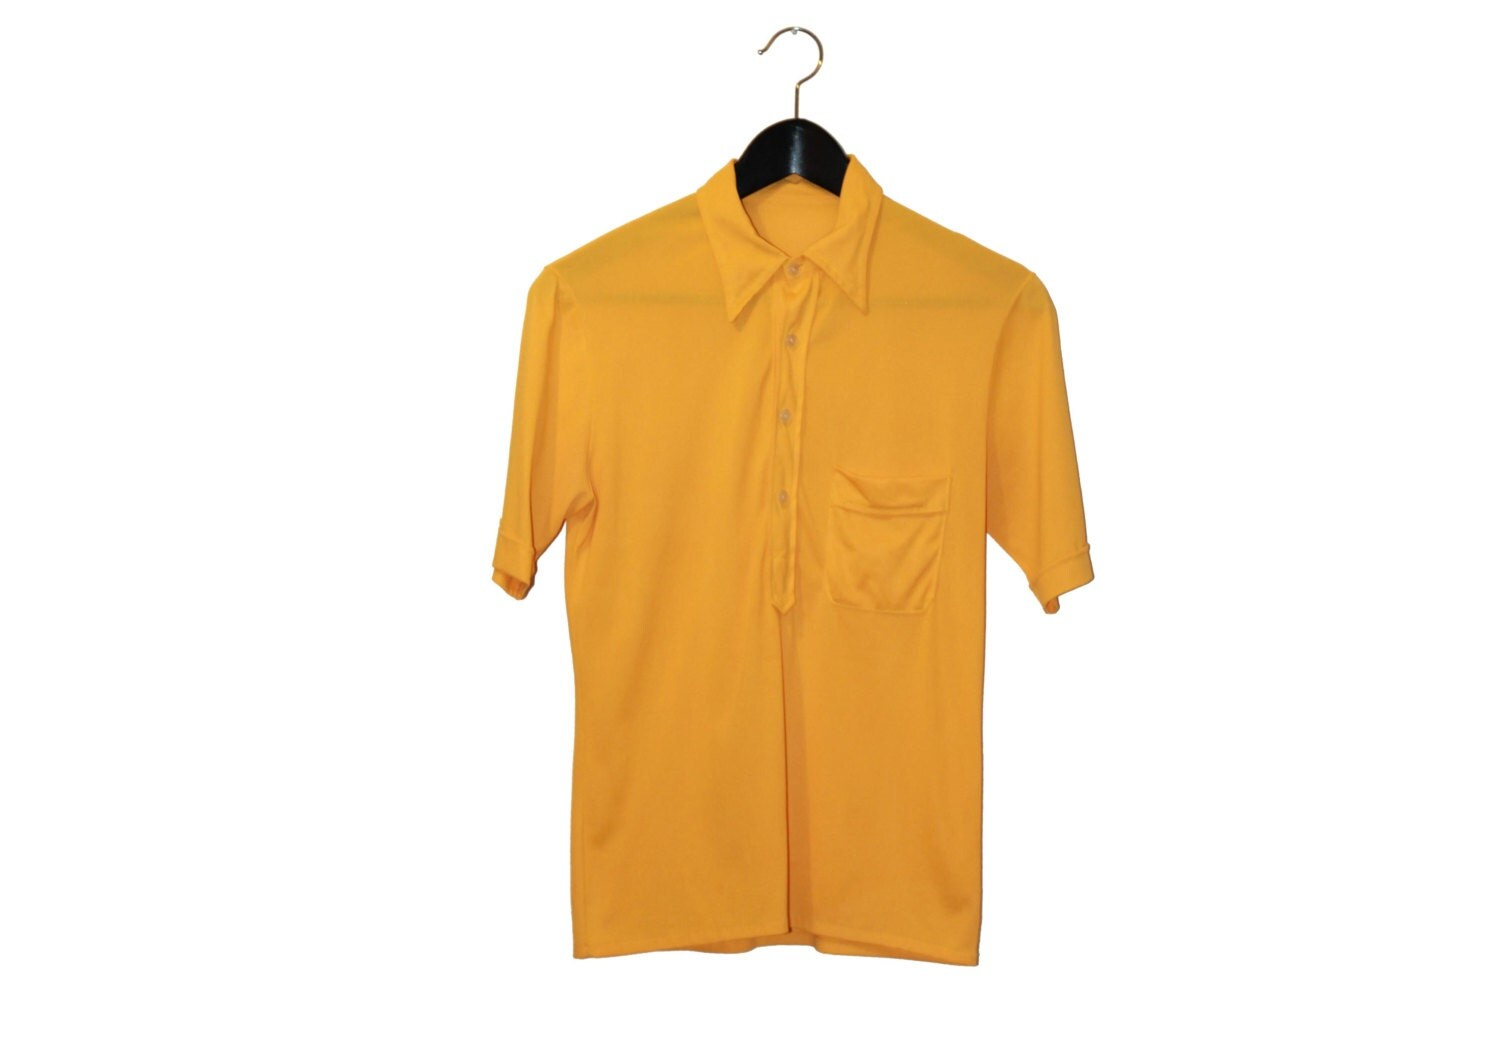 70s vintage yellow top polo vintage clothing